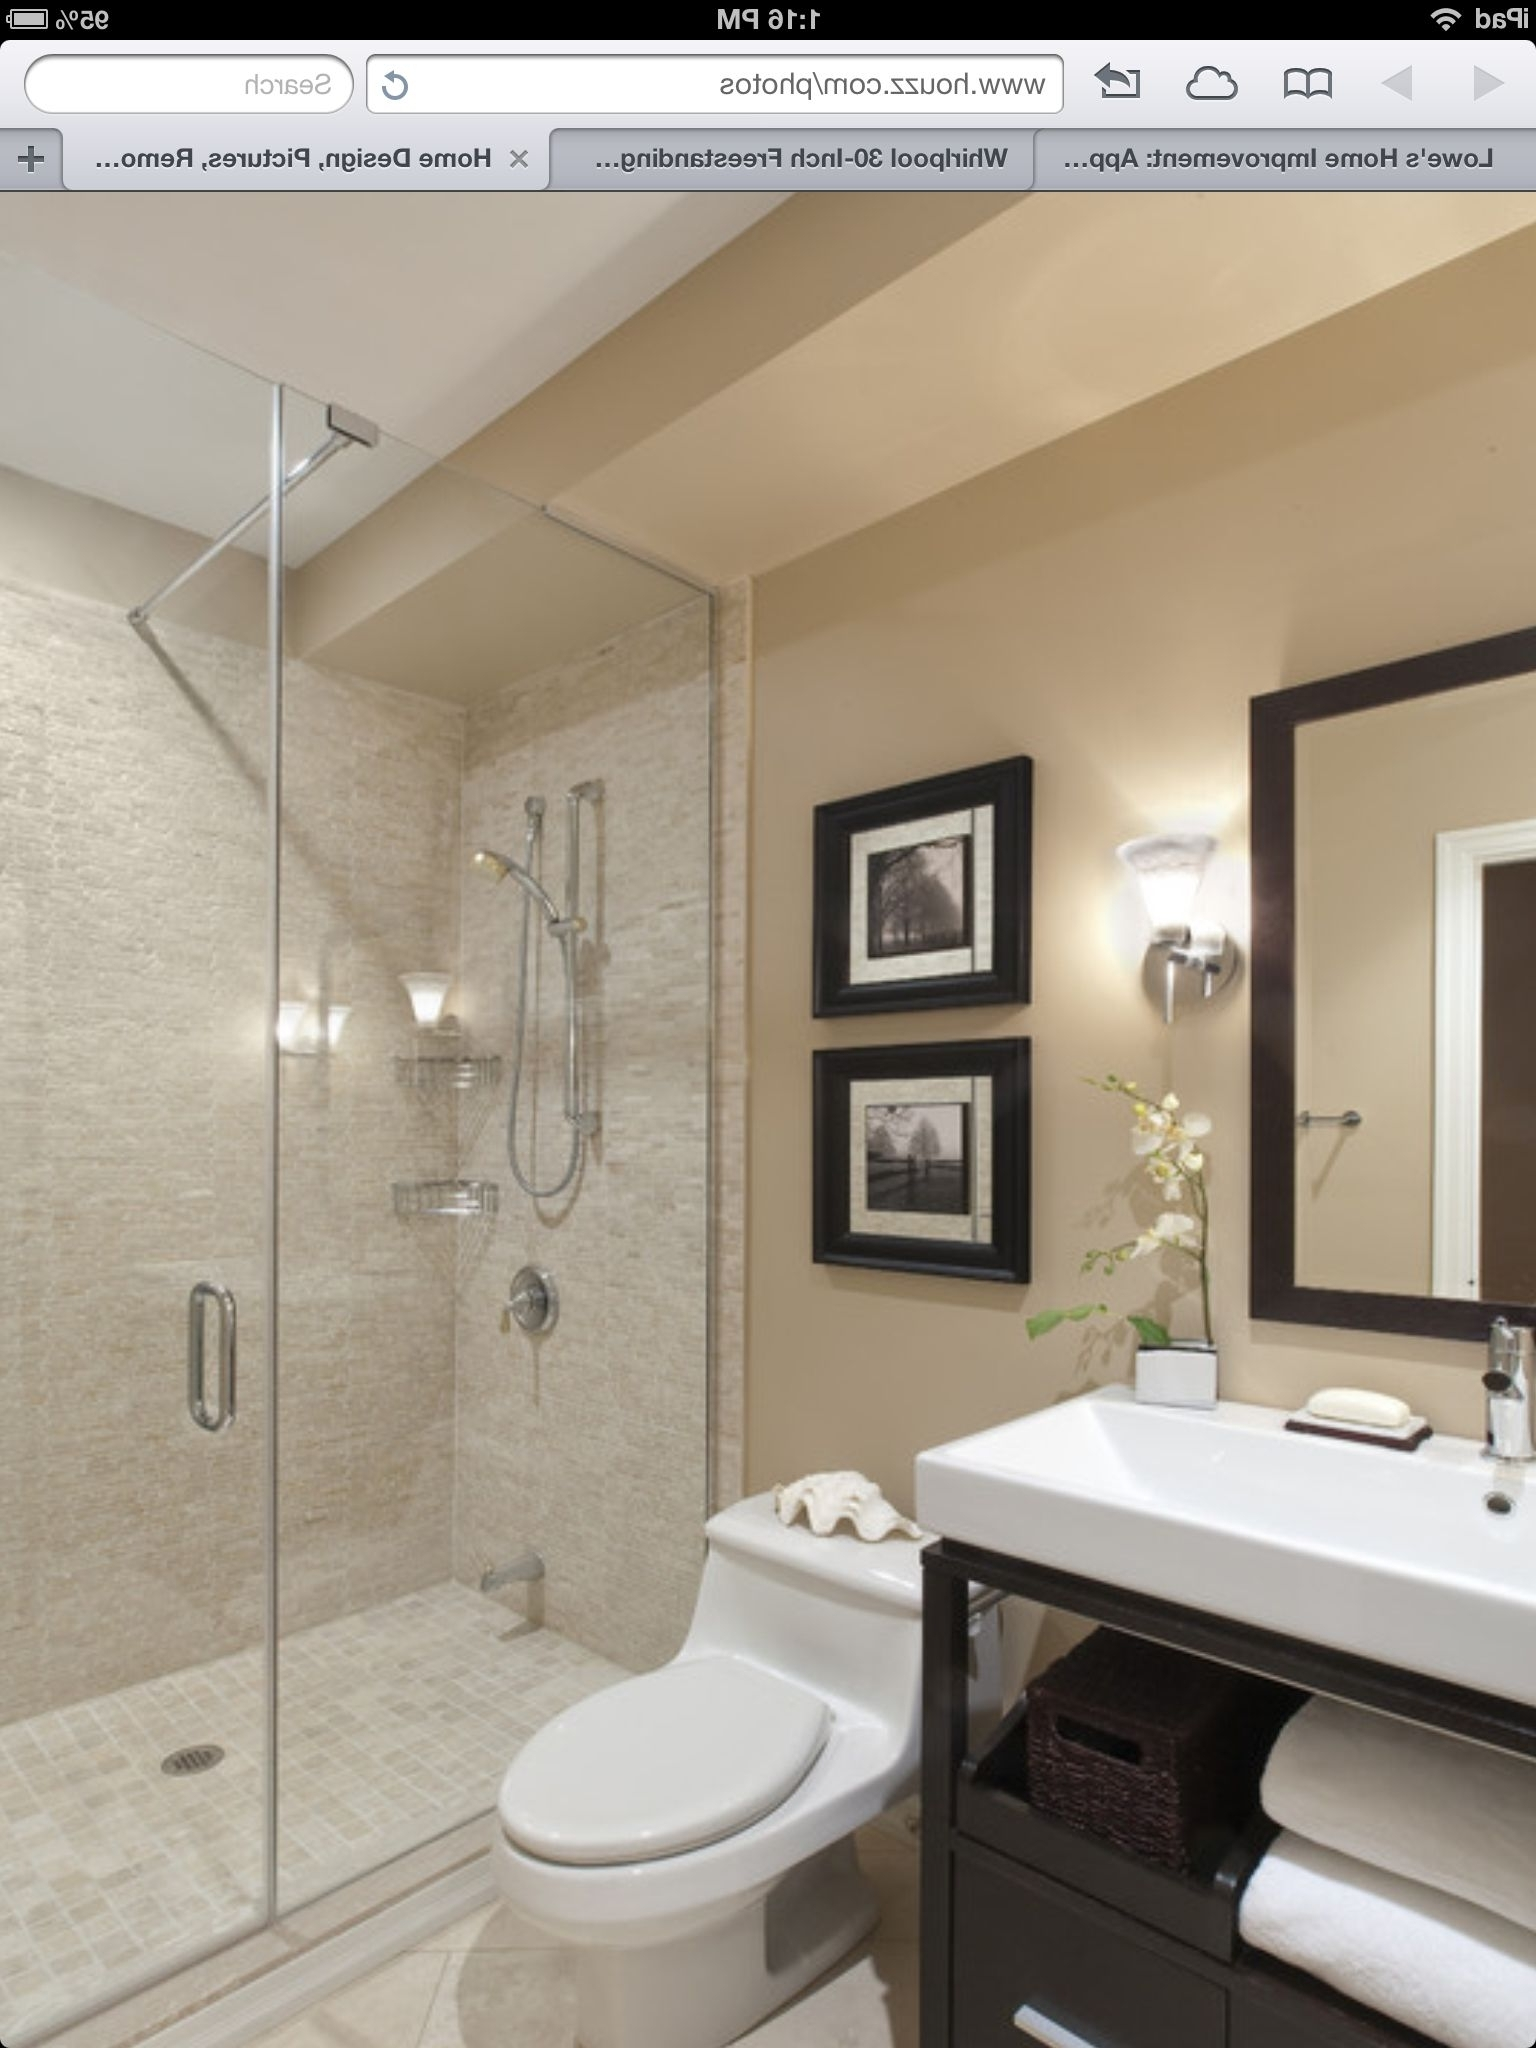 Clean Look | Transitional Bathroom Design, Small Bathroom Lowe'S Bathroom Design Tool